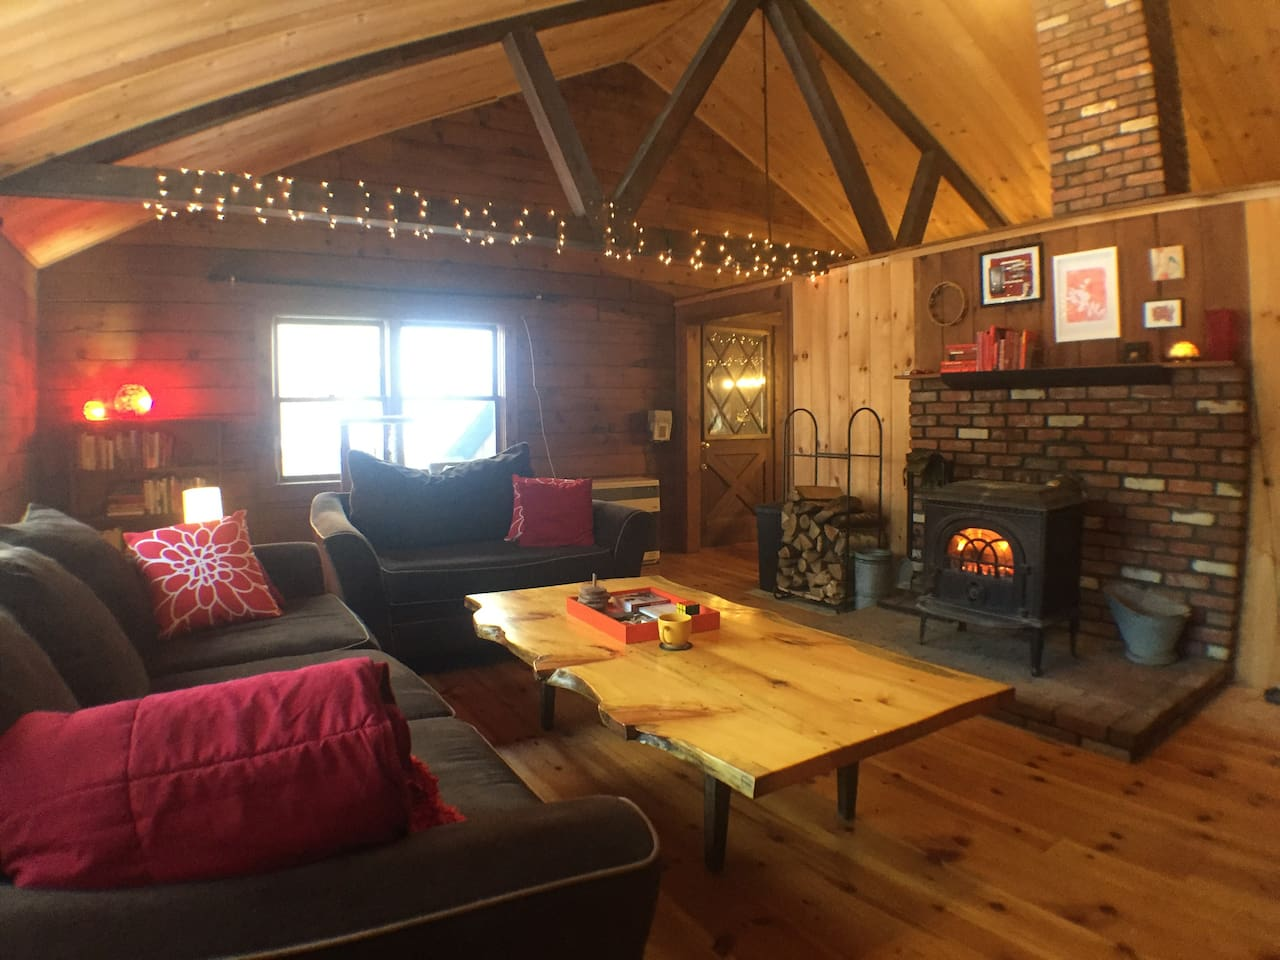 Spacious, open living room with cathedral ceilings and a cozy wood stove.